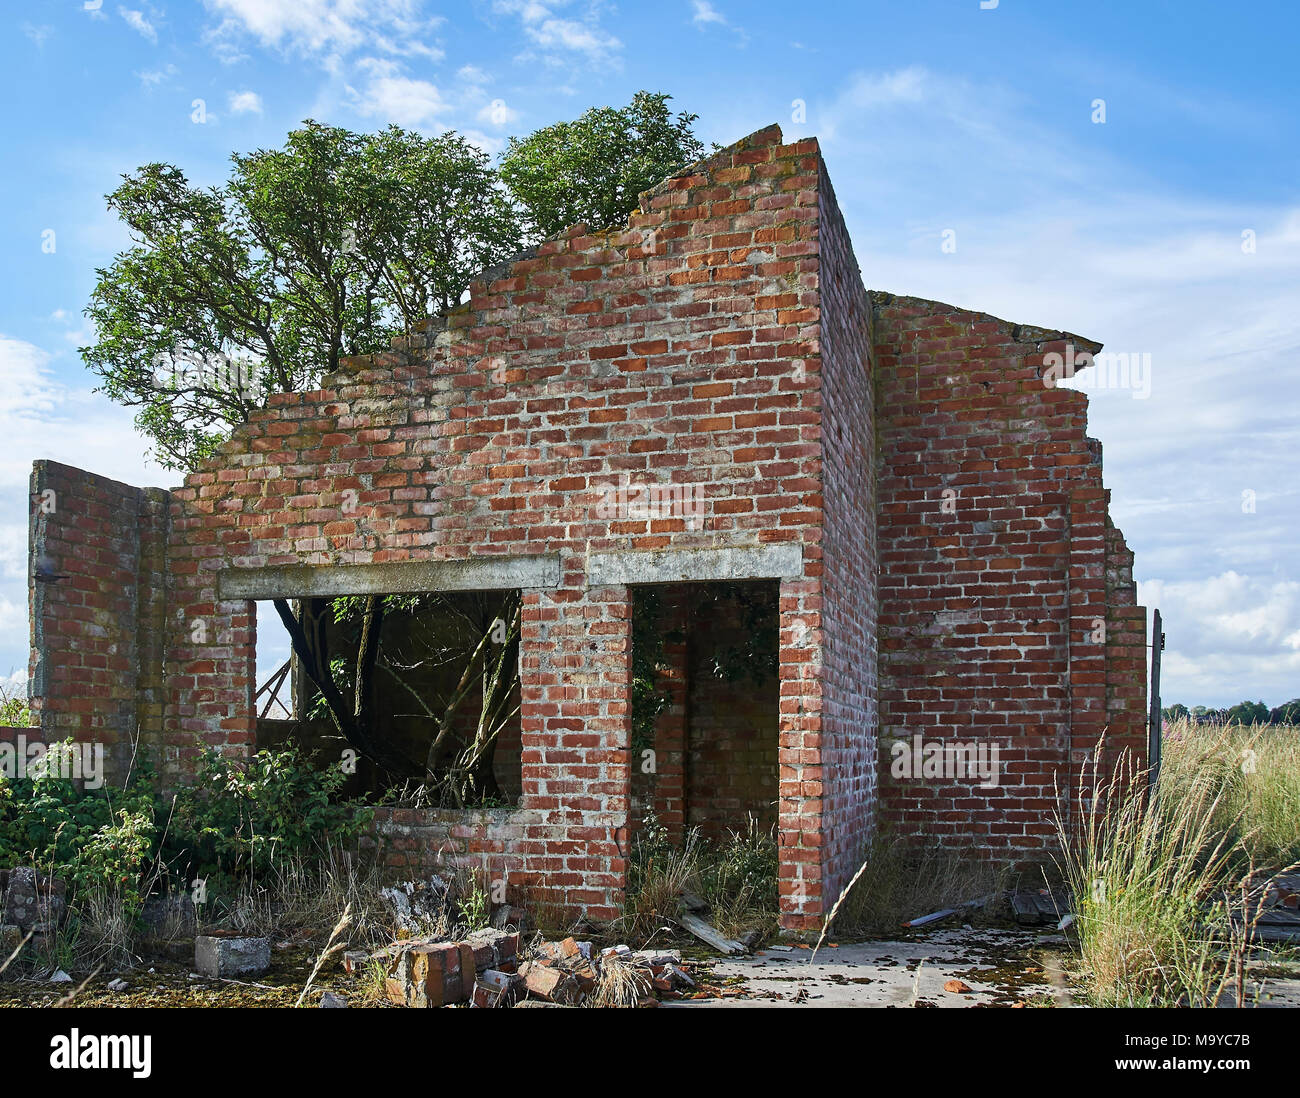 One of the many old Brick built Building ruins that can be found around the site of RAF Kinnell near Arbroath, Scotland. - Stock Image